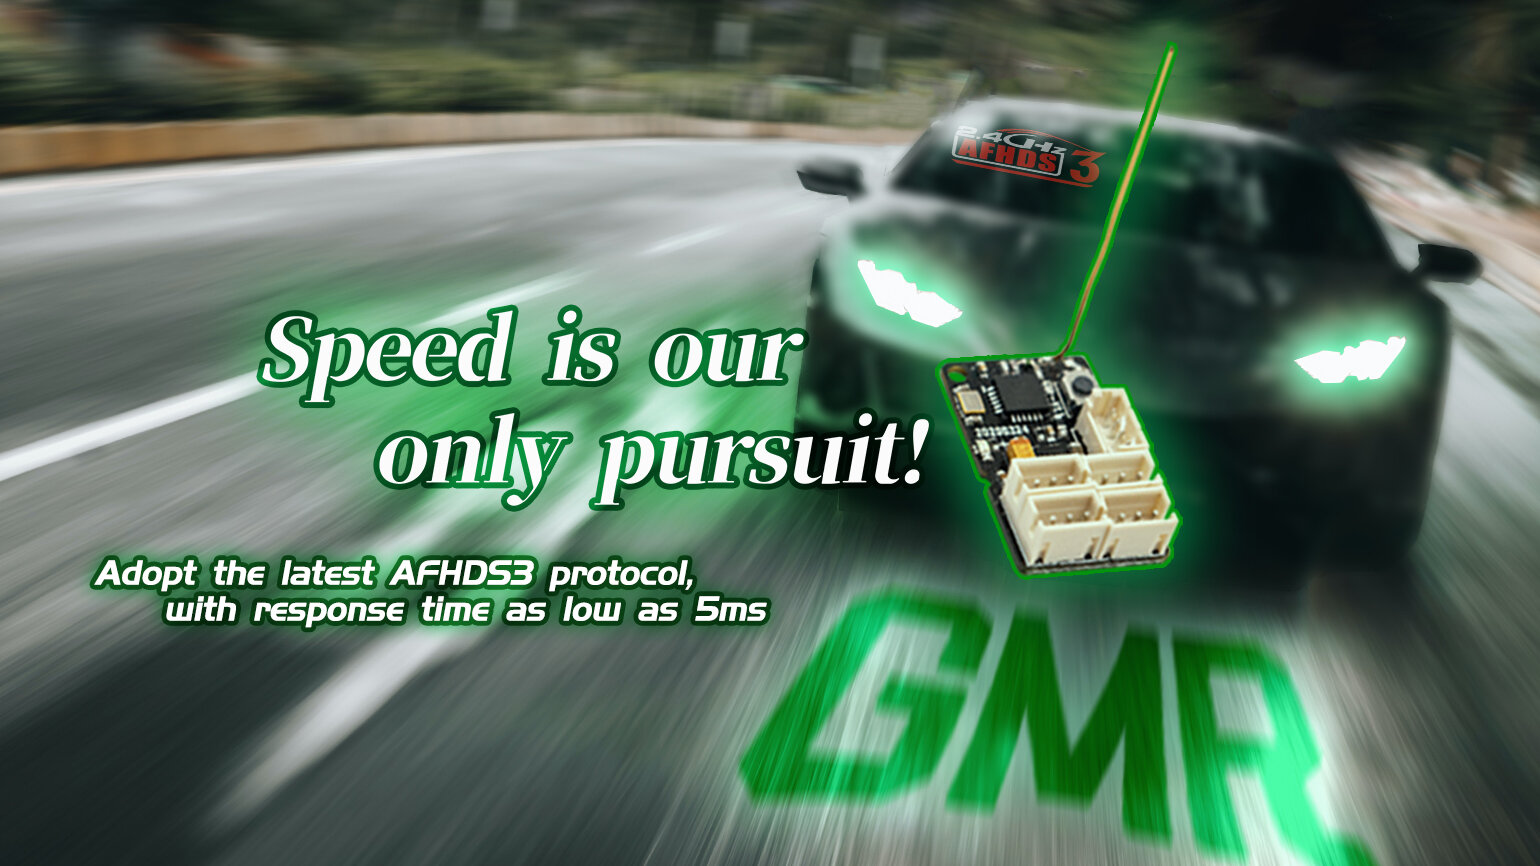 +GMRspeed is our only pursuit.jpg